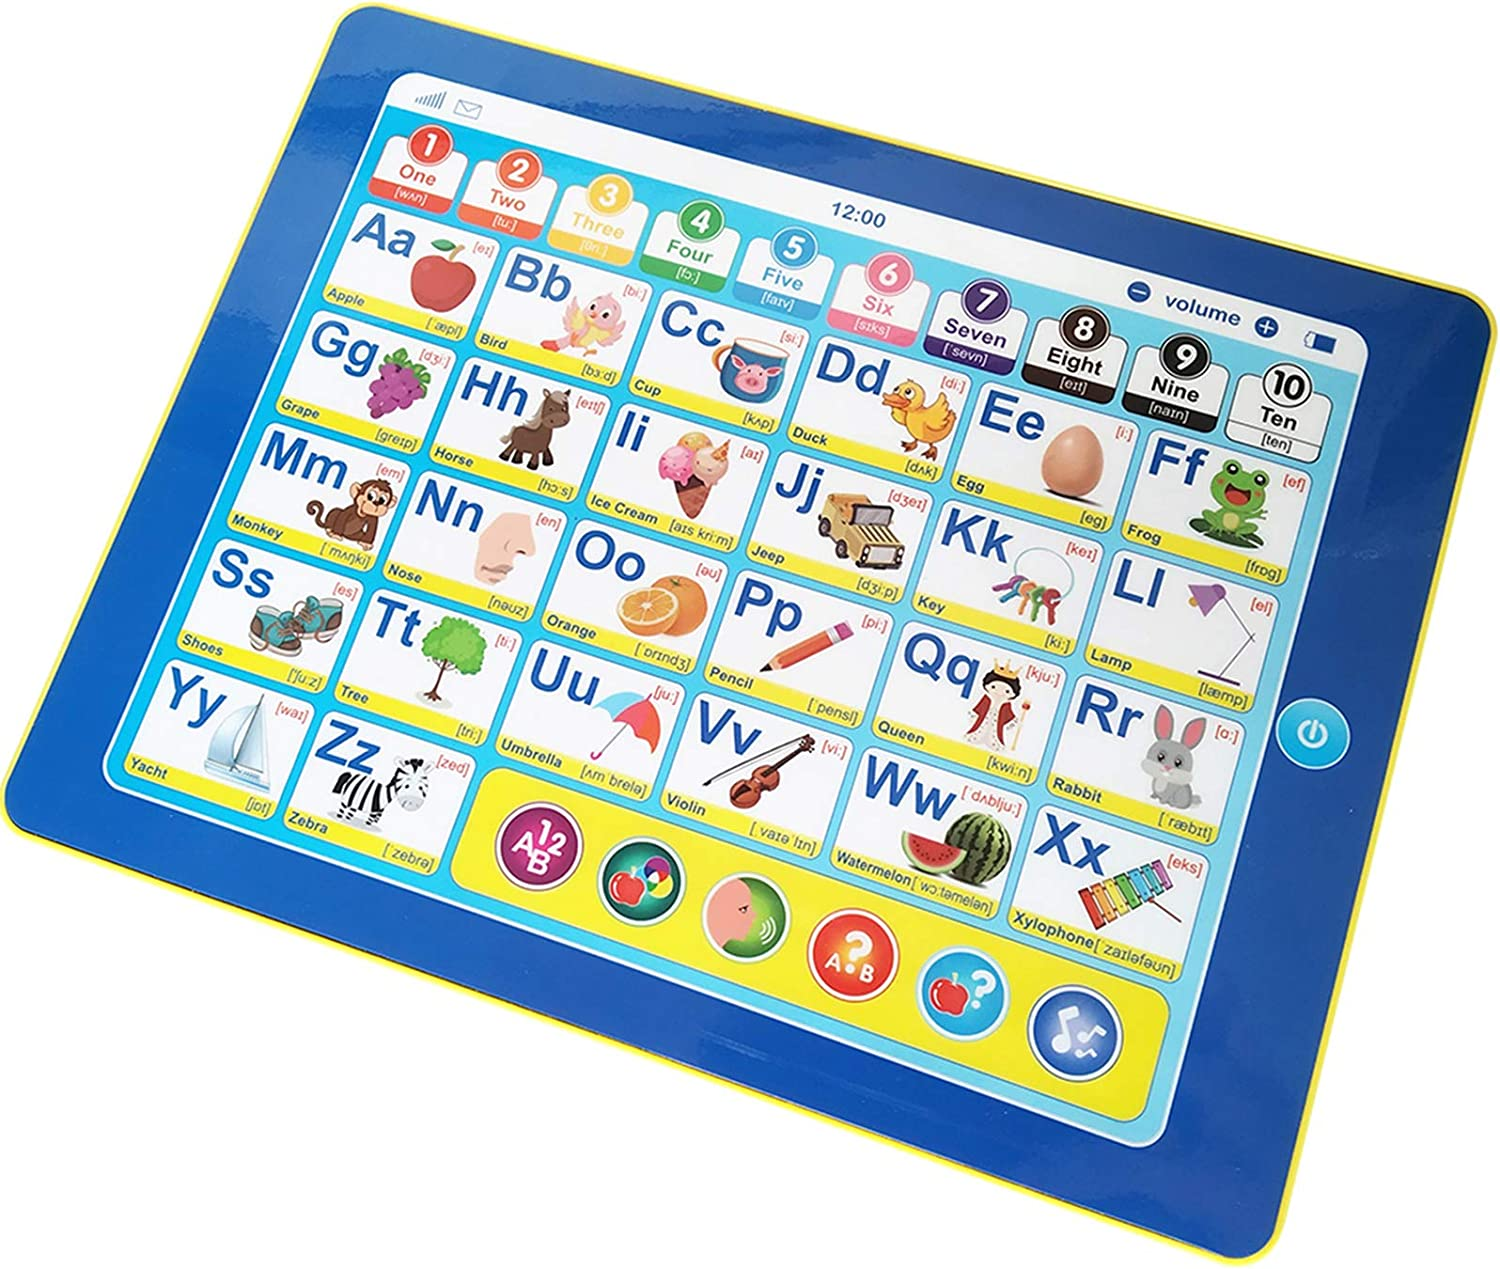 Electronic Interactive Learning Tablet,6 Game for Toddler,Touch and Learn Words,ABC,Numbers,Music and Colors,Educational Toy at Daycare, Preschool, Kindergarten